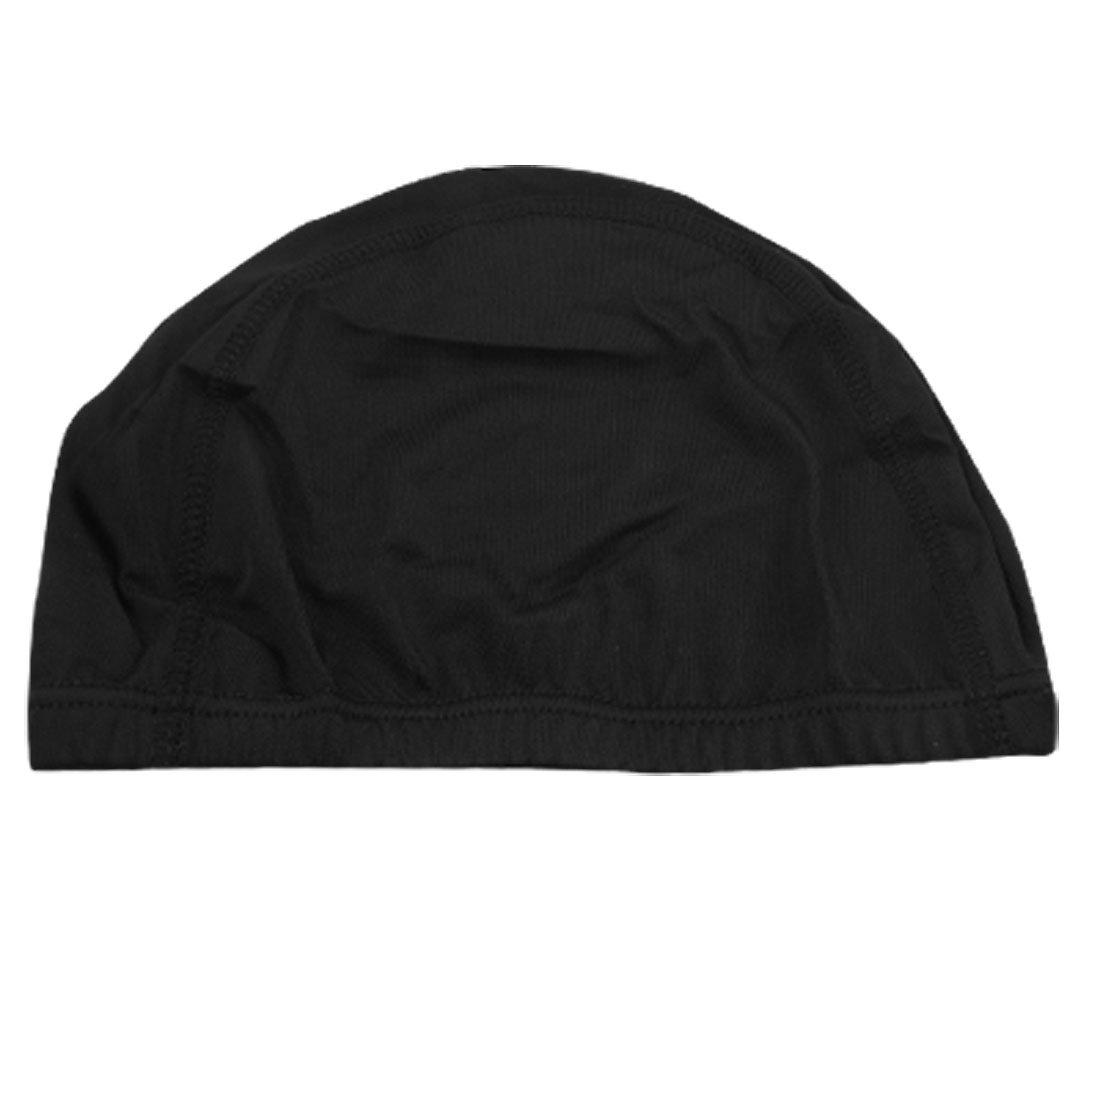 177a043381c 2019 2x Woman Man Polyester Elastic Swimming Bathing Hat Cap Black From  Simmer